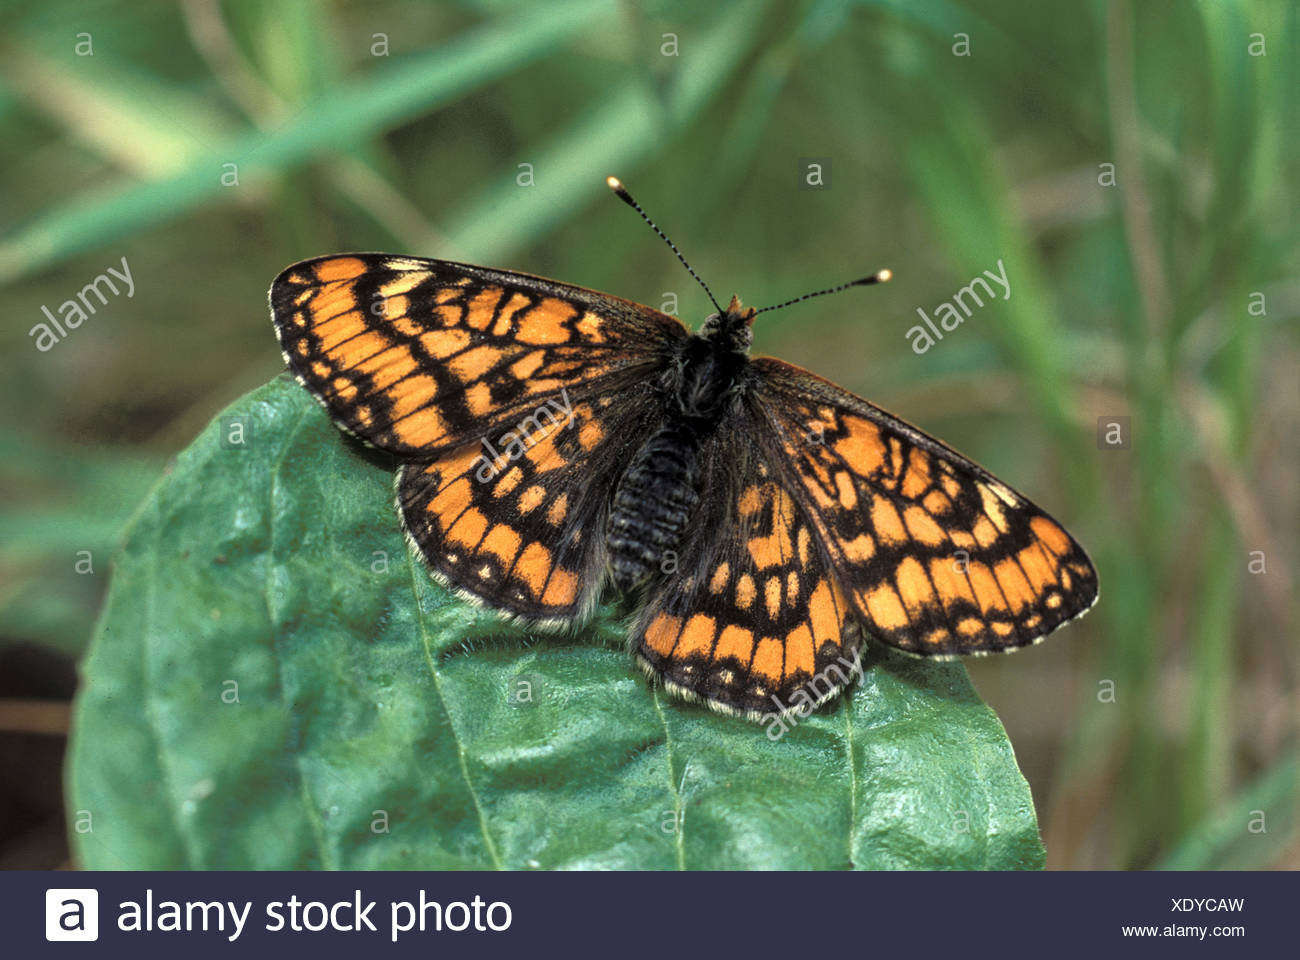 animal animals butterfly butterflies insect insects invertebrate